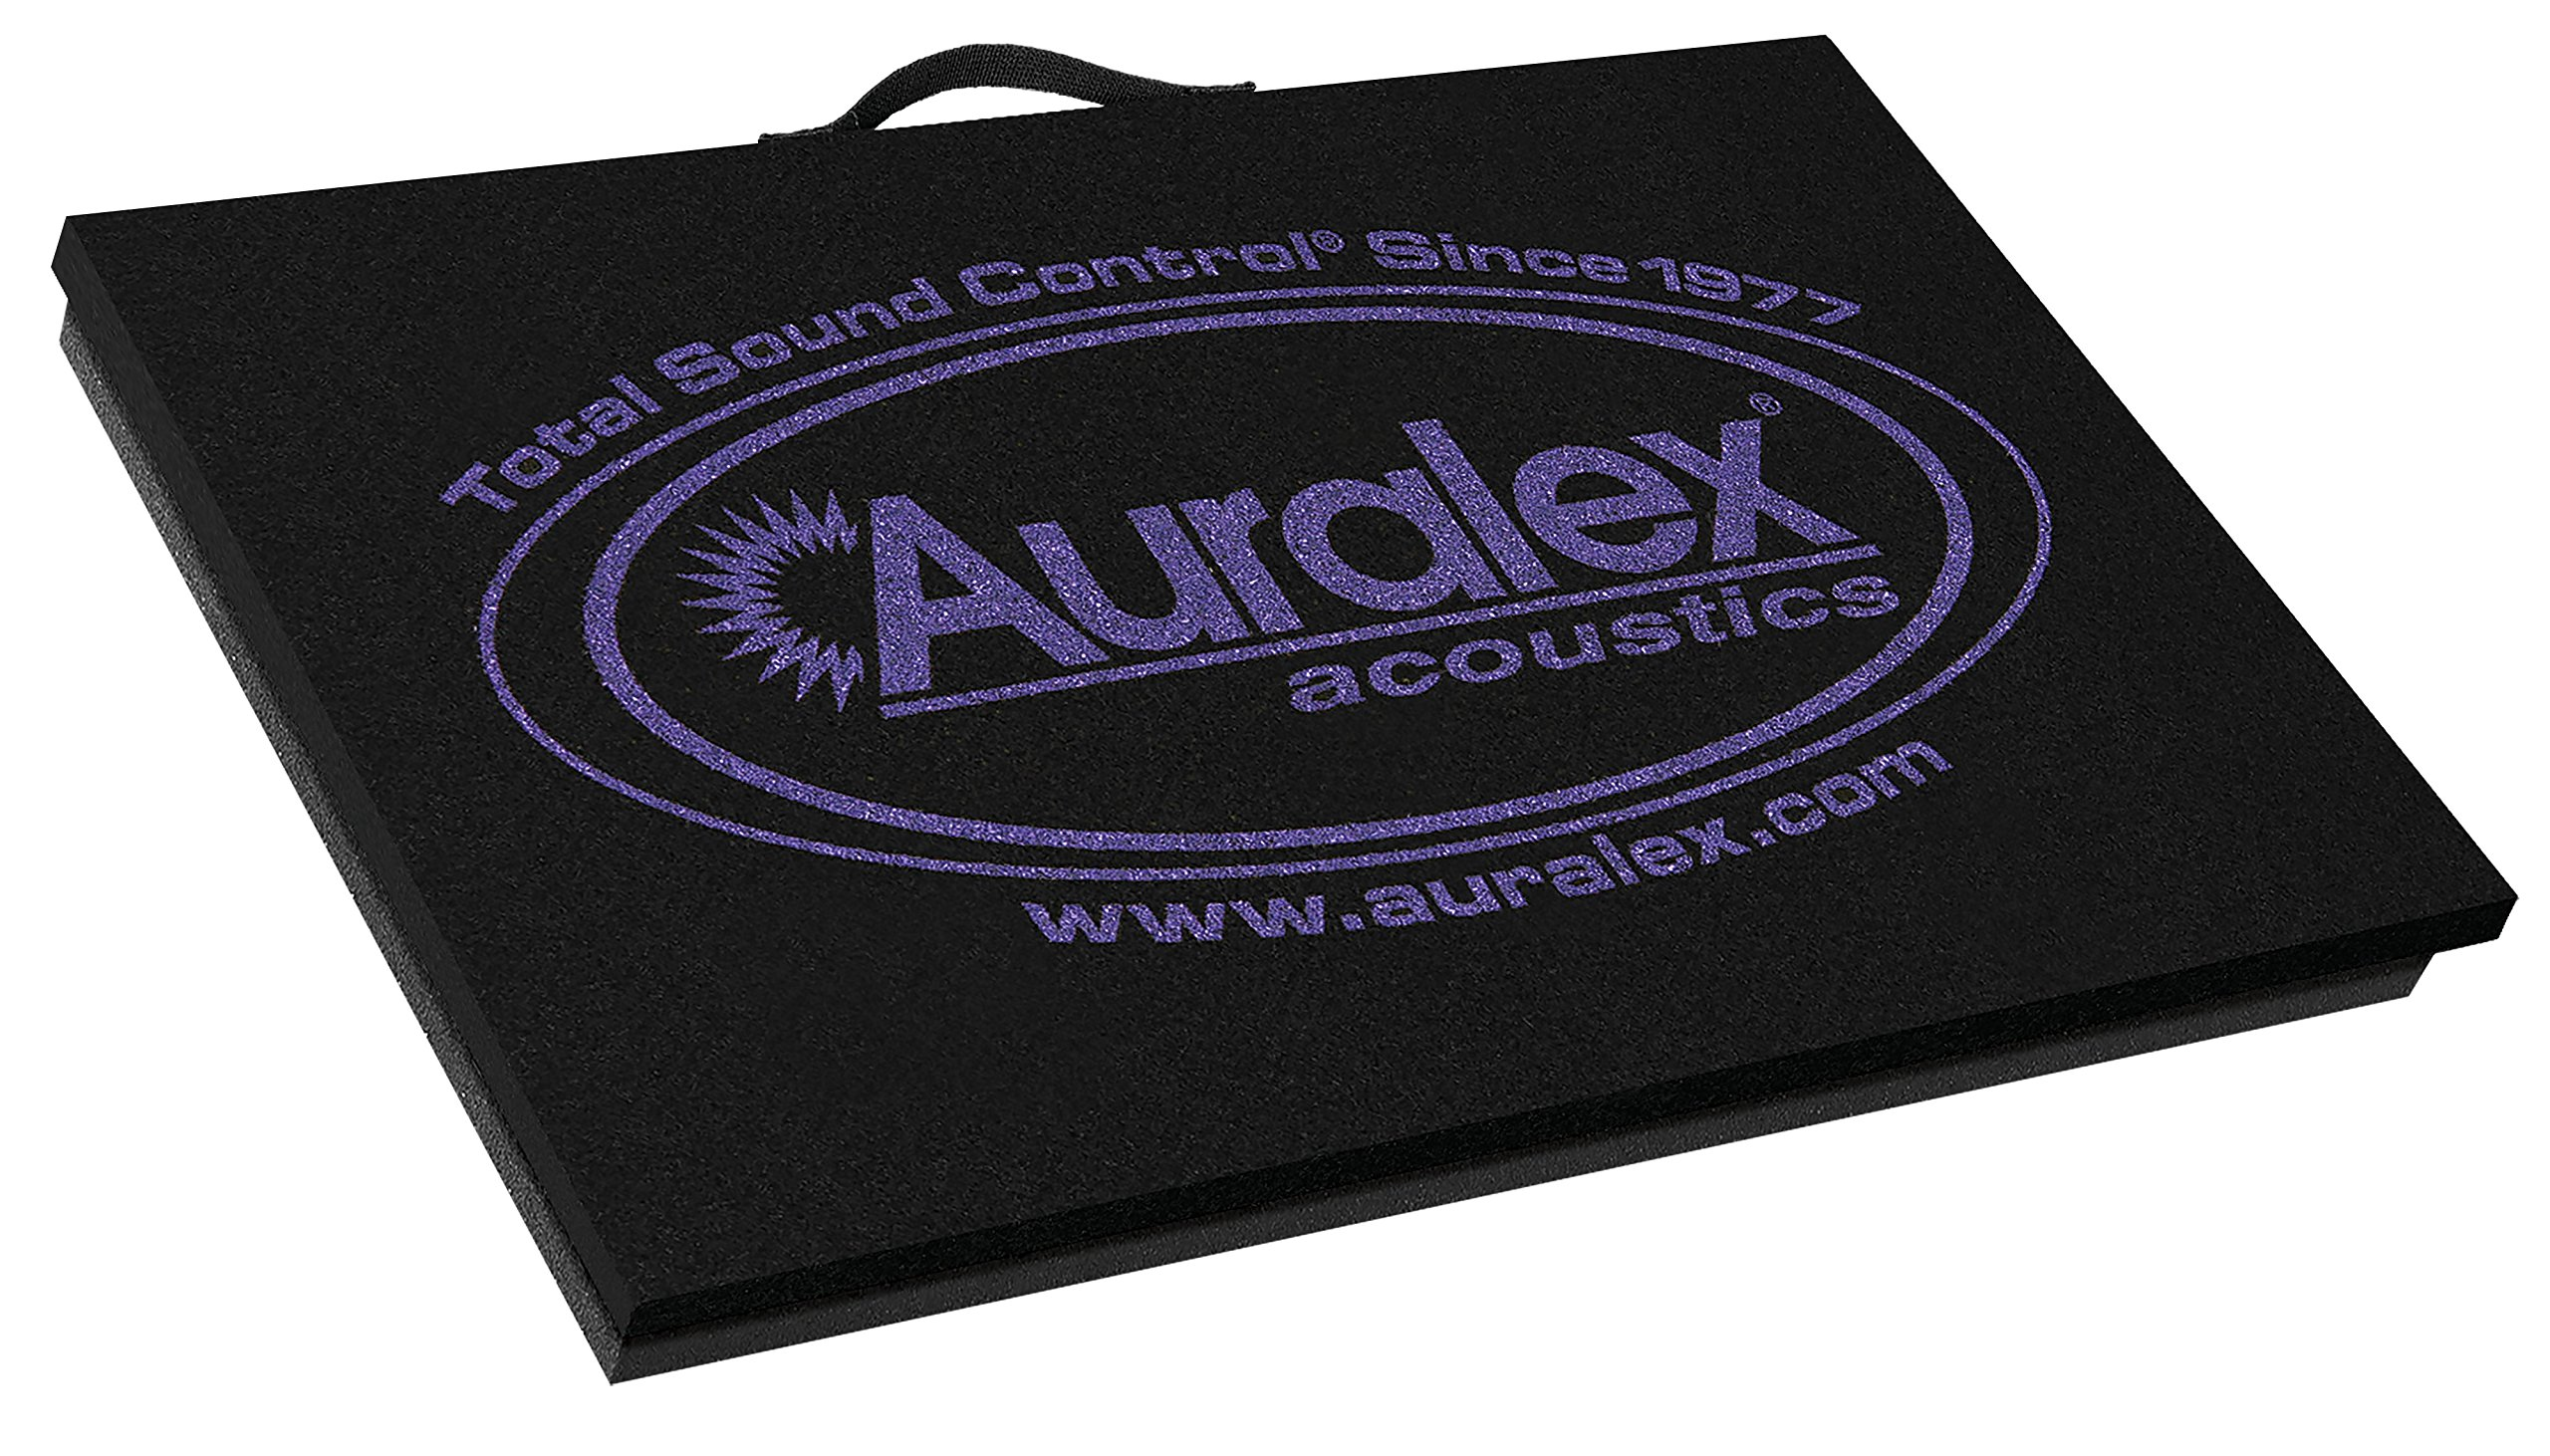 Auralex Acoustics GRAMMA v2 Isolation Platform for Amplifiers, 7/4'' x 15'' x 23'' by Auralex Acoustics